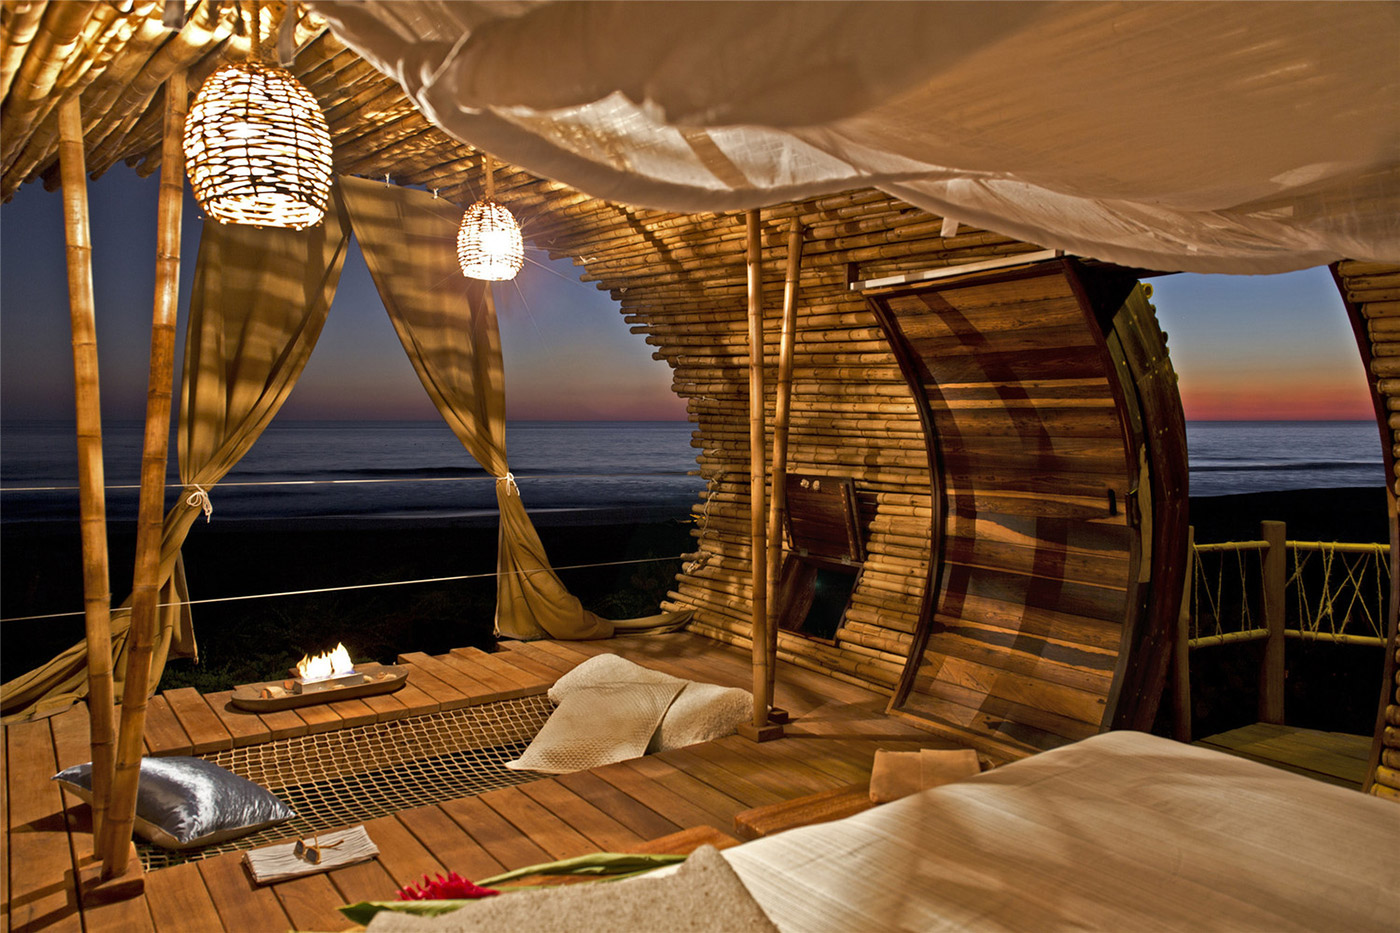 Fantasy Bamboo Cabin on the Beach  Adorable Home